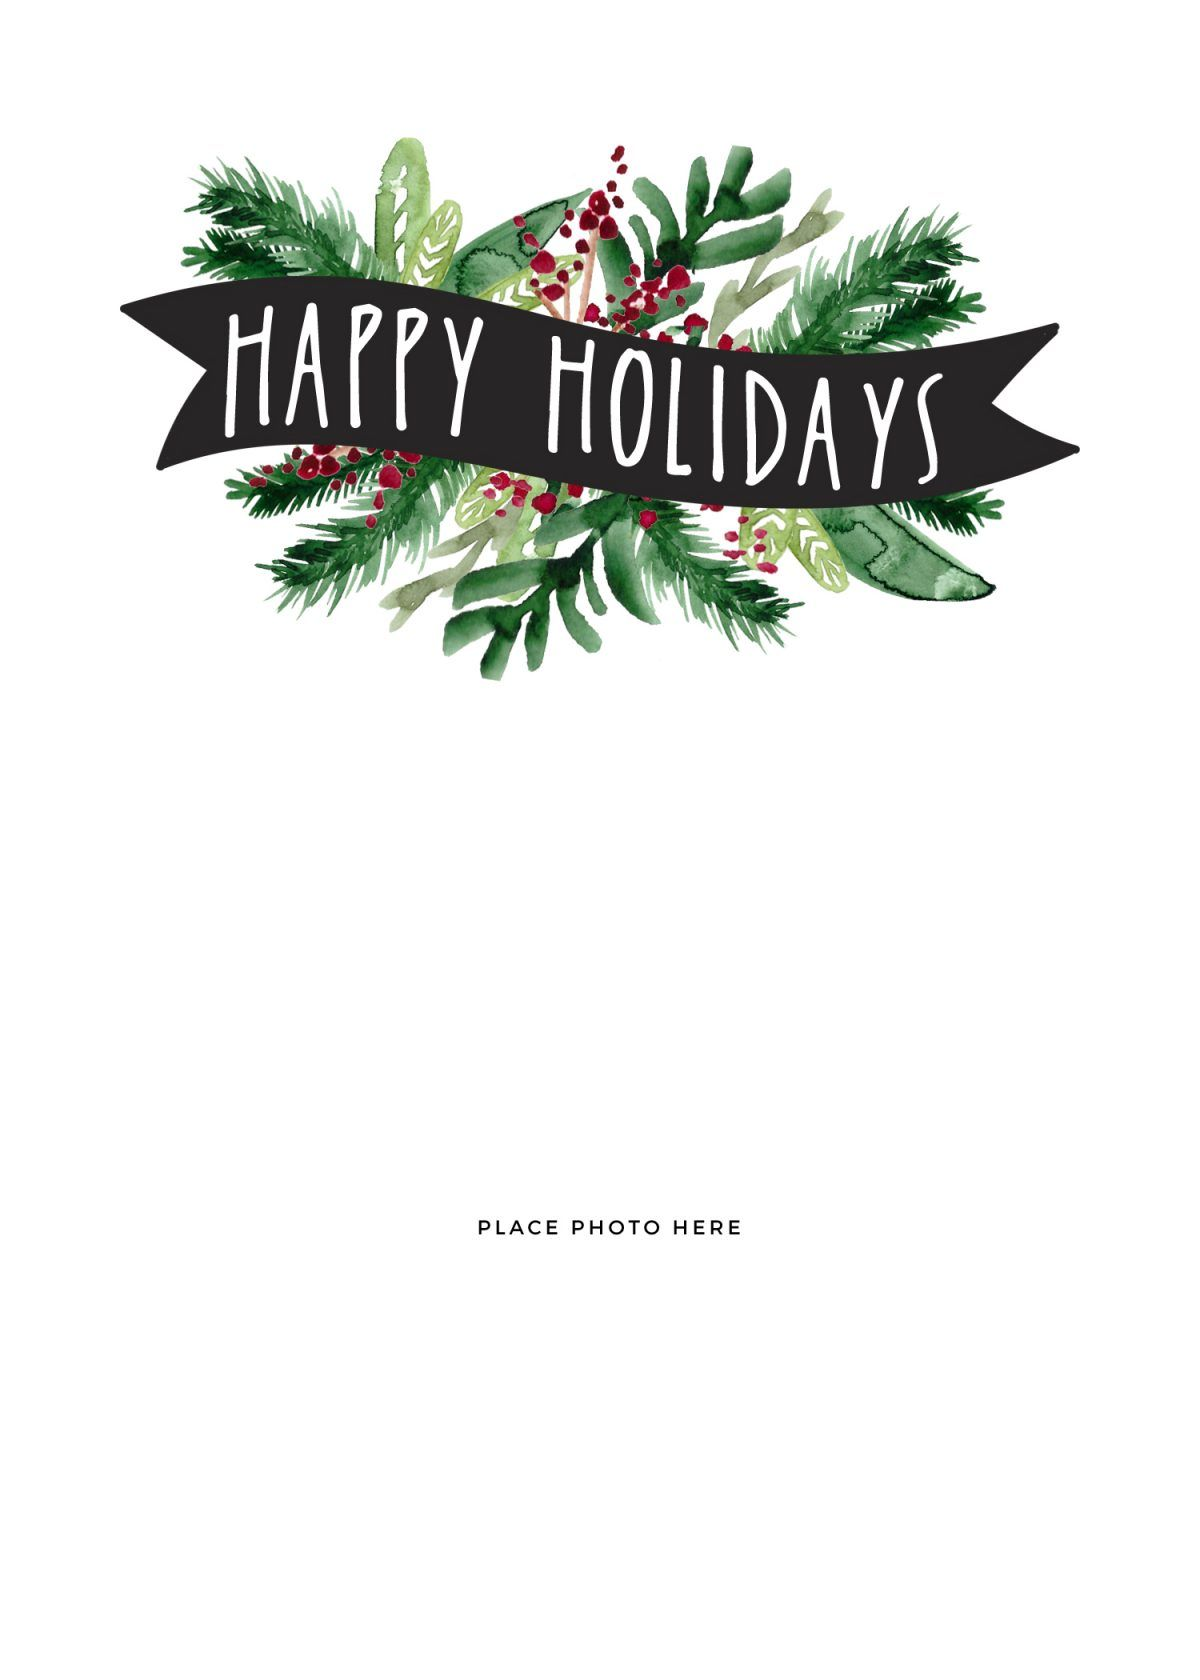 Make Your Own Christmas Cards (FREE) | Somewhat Simple ...